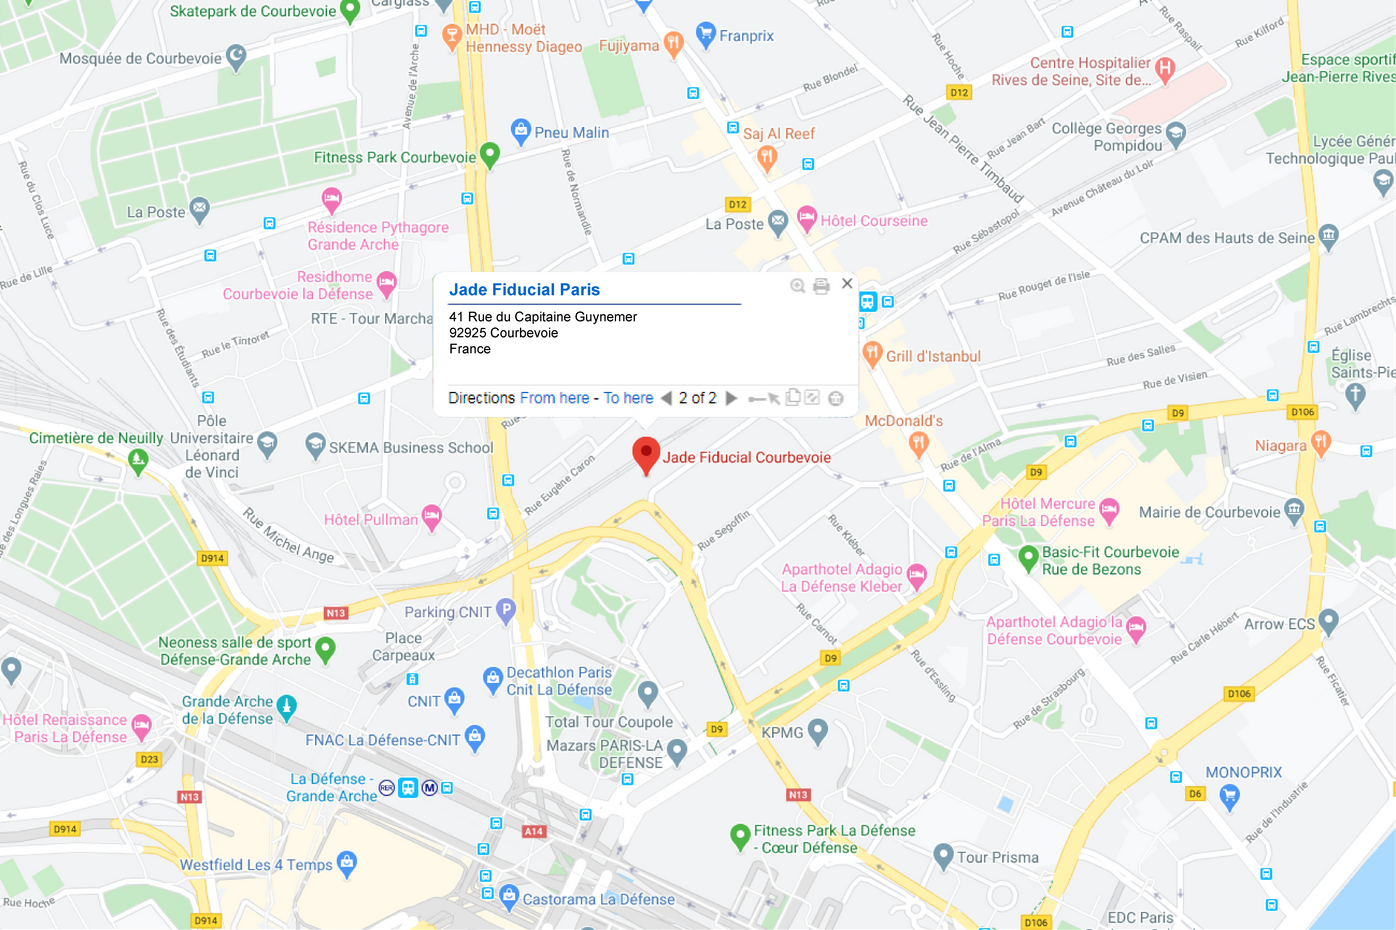 41 Rue du Capitaine Guynemer, 92925 Courbevoie, France